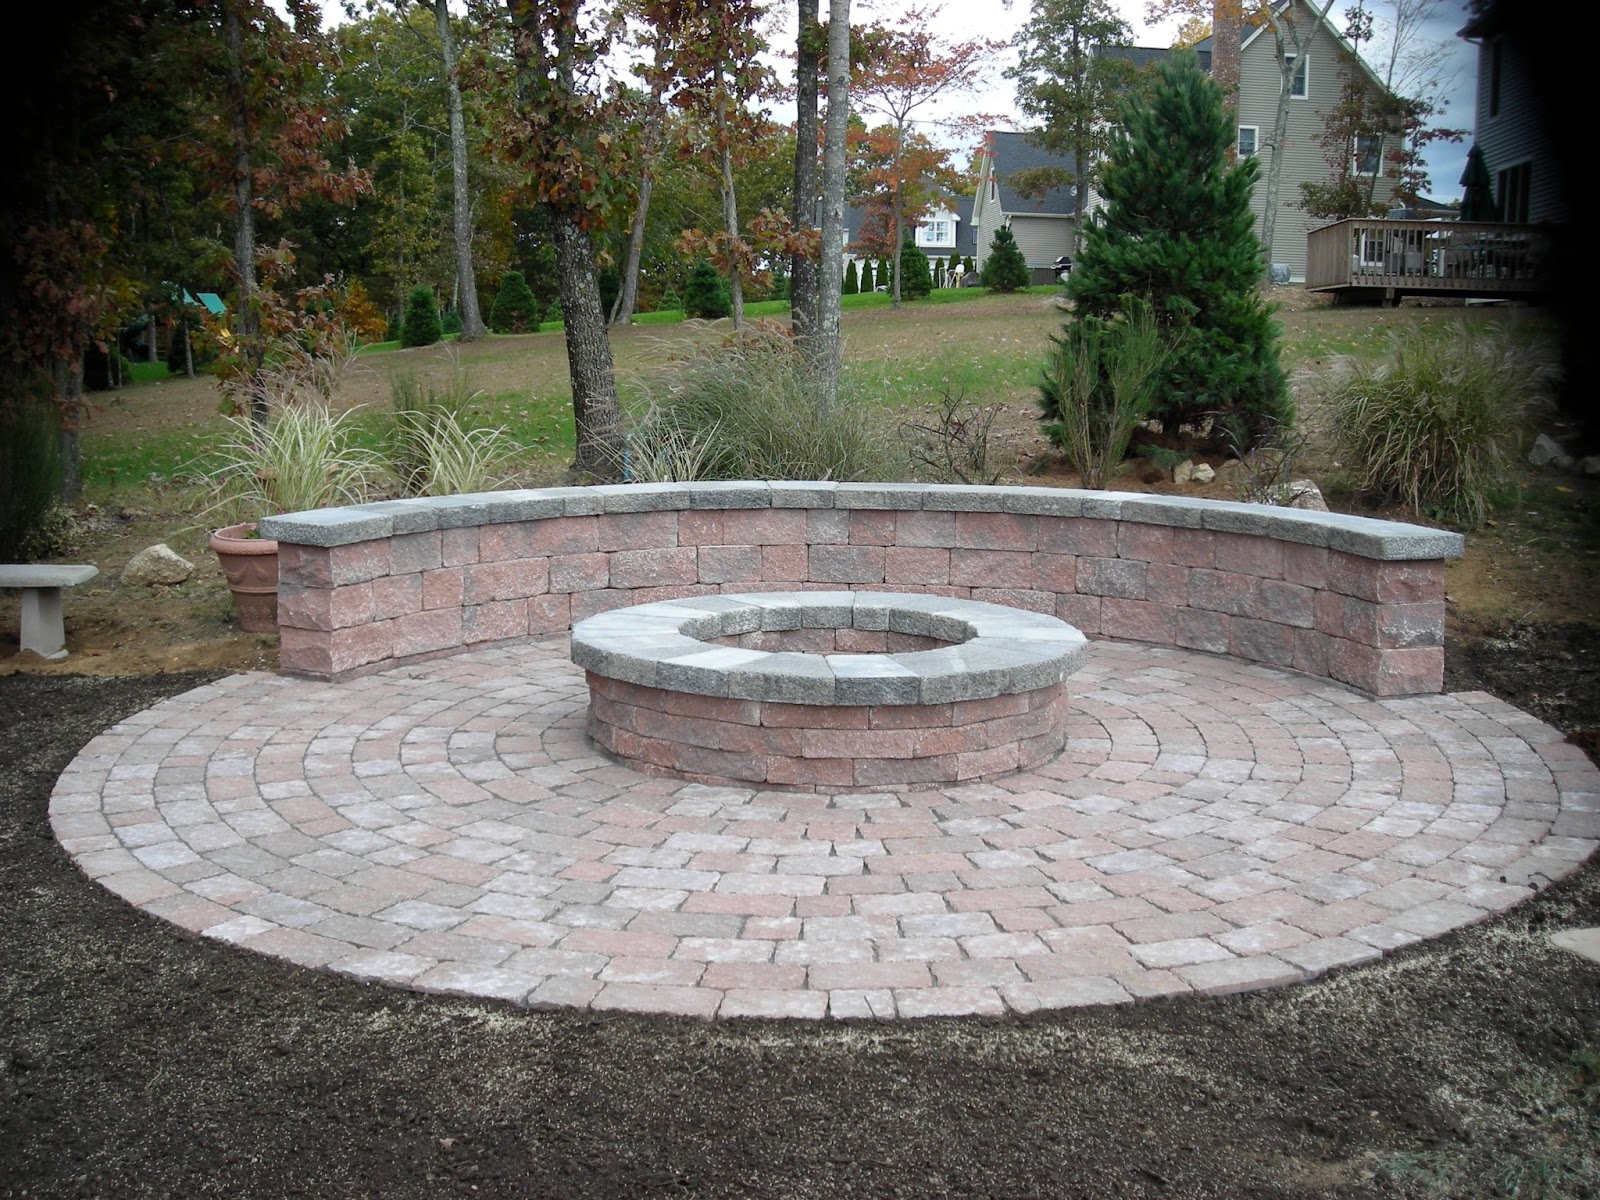 Jonesyinc Keepingupwiththejoneses Round Brick Patio